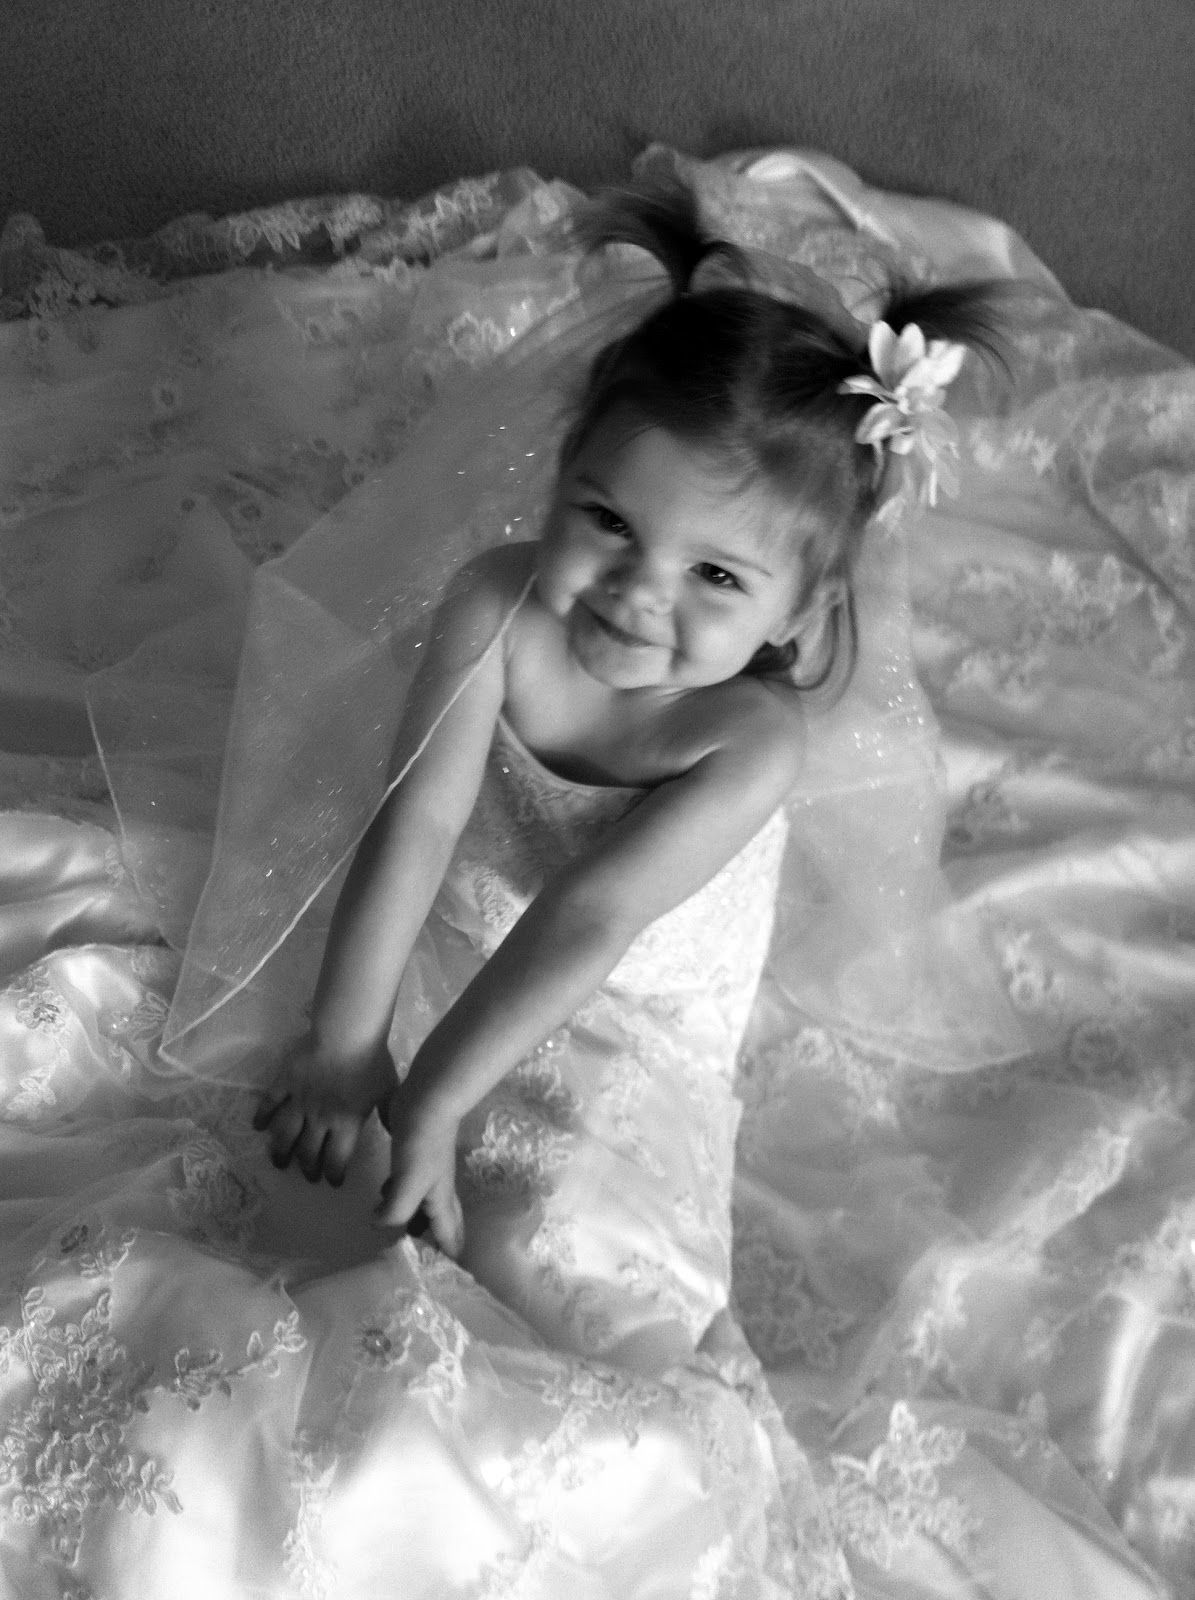 Photograph your daughter in your wedding dress keepsake melissa